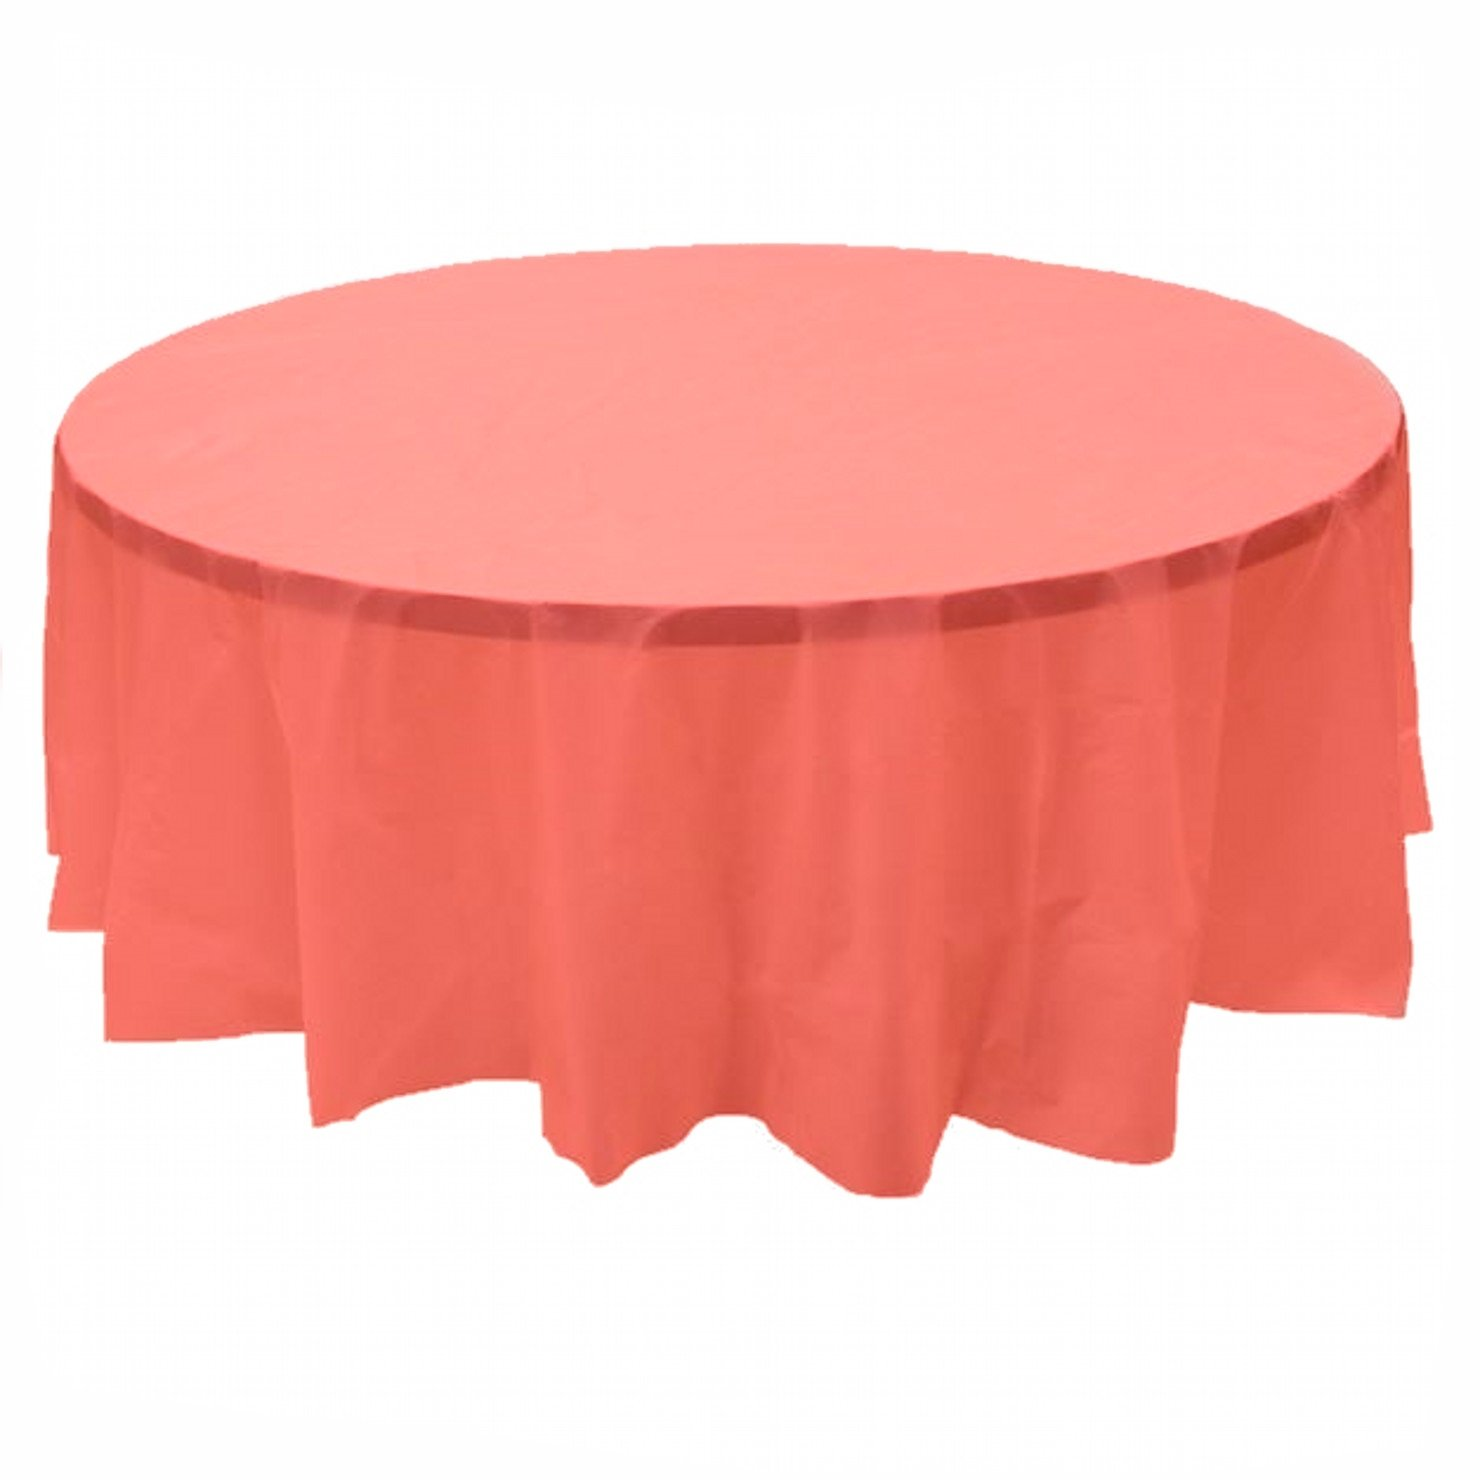 24 pcs (1 case) of Plastic Heavy Duty Premium Round tablecloths 84'' Diameter Table Cover - Coral by CC